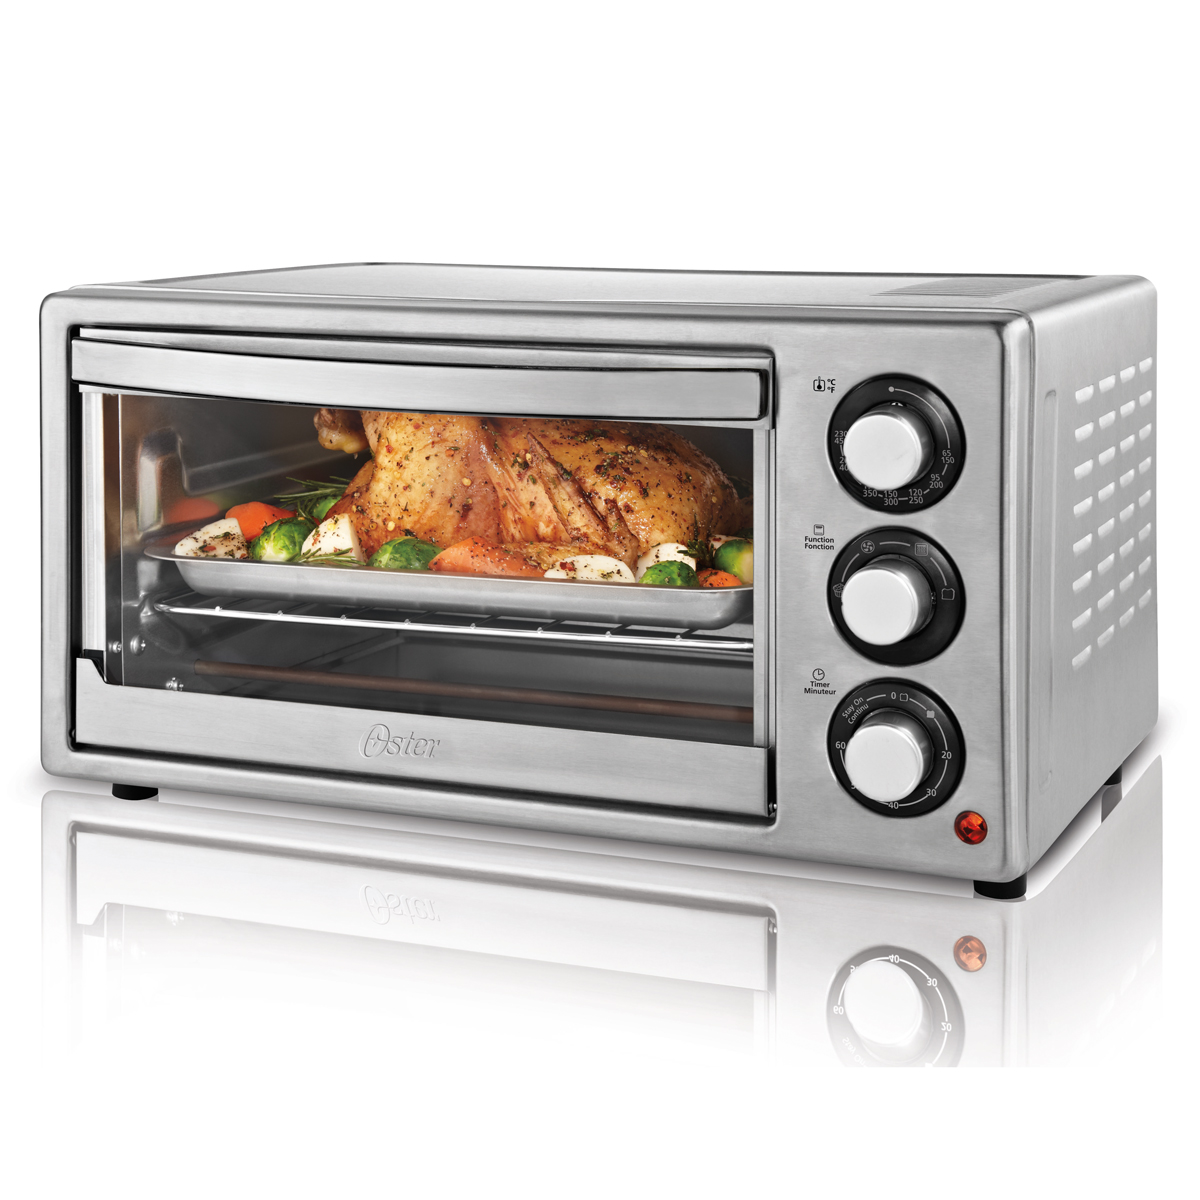 Countertop Oven : Oster? 6-Slice Convection Countertop Oven, Stainless Steel TSSTTVF8GA ...